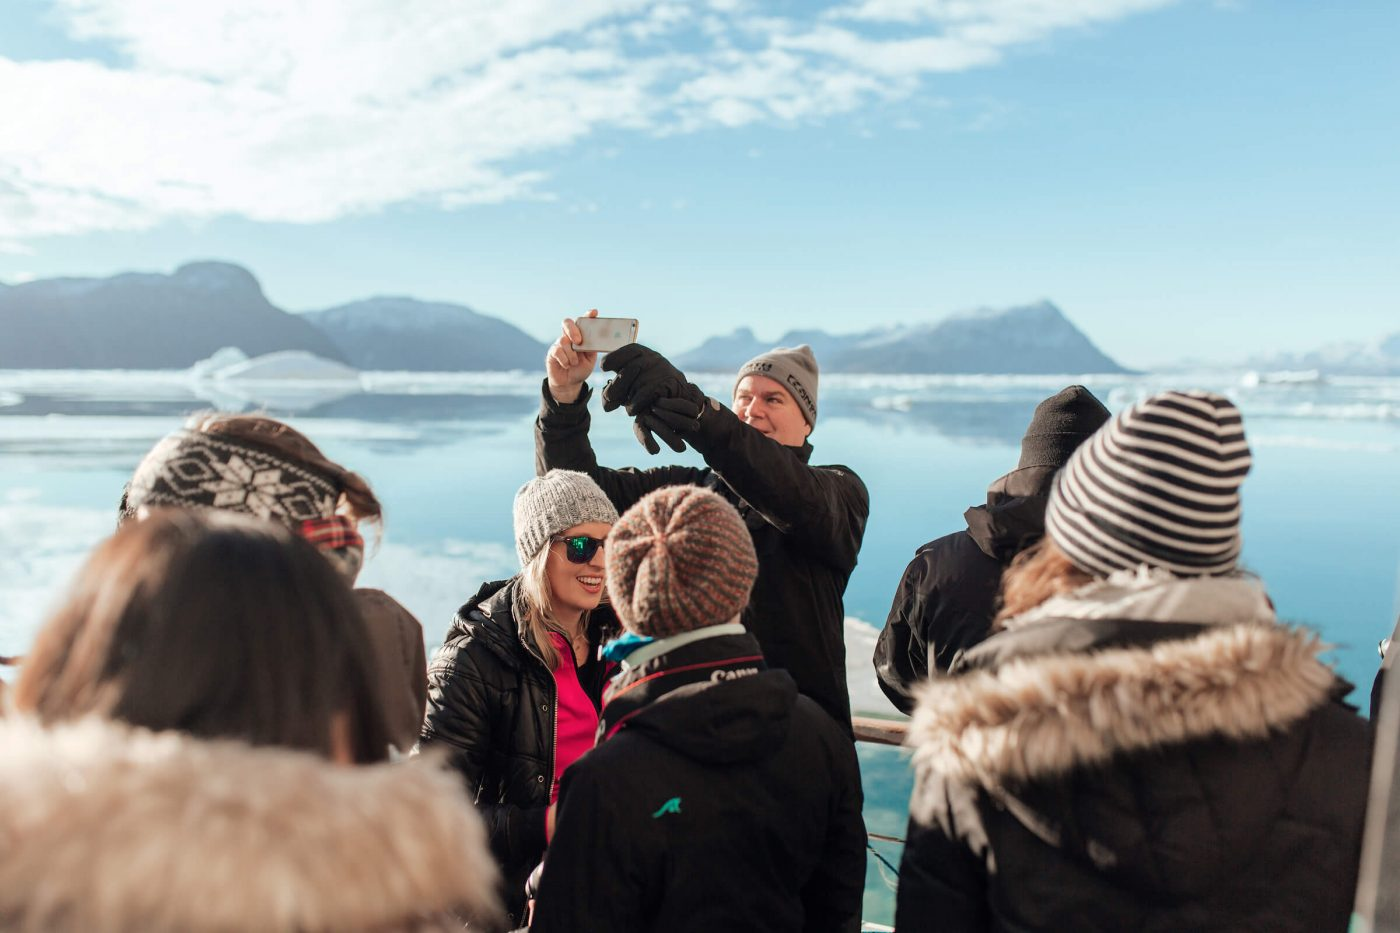 Group of tourists enjoying the Icefjord in Nuuk in Greenland. Photo by Rebecca Gustafsson.